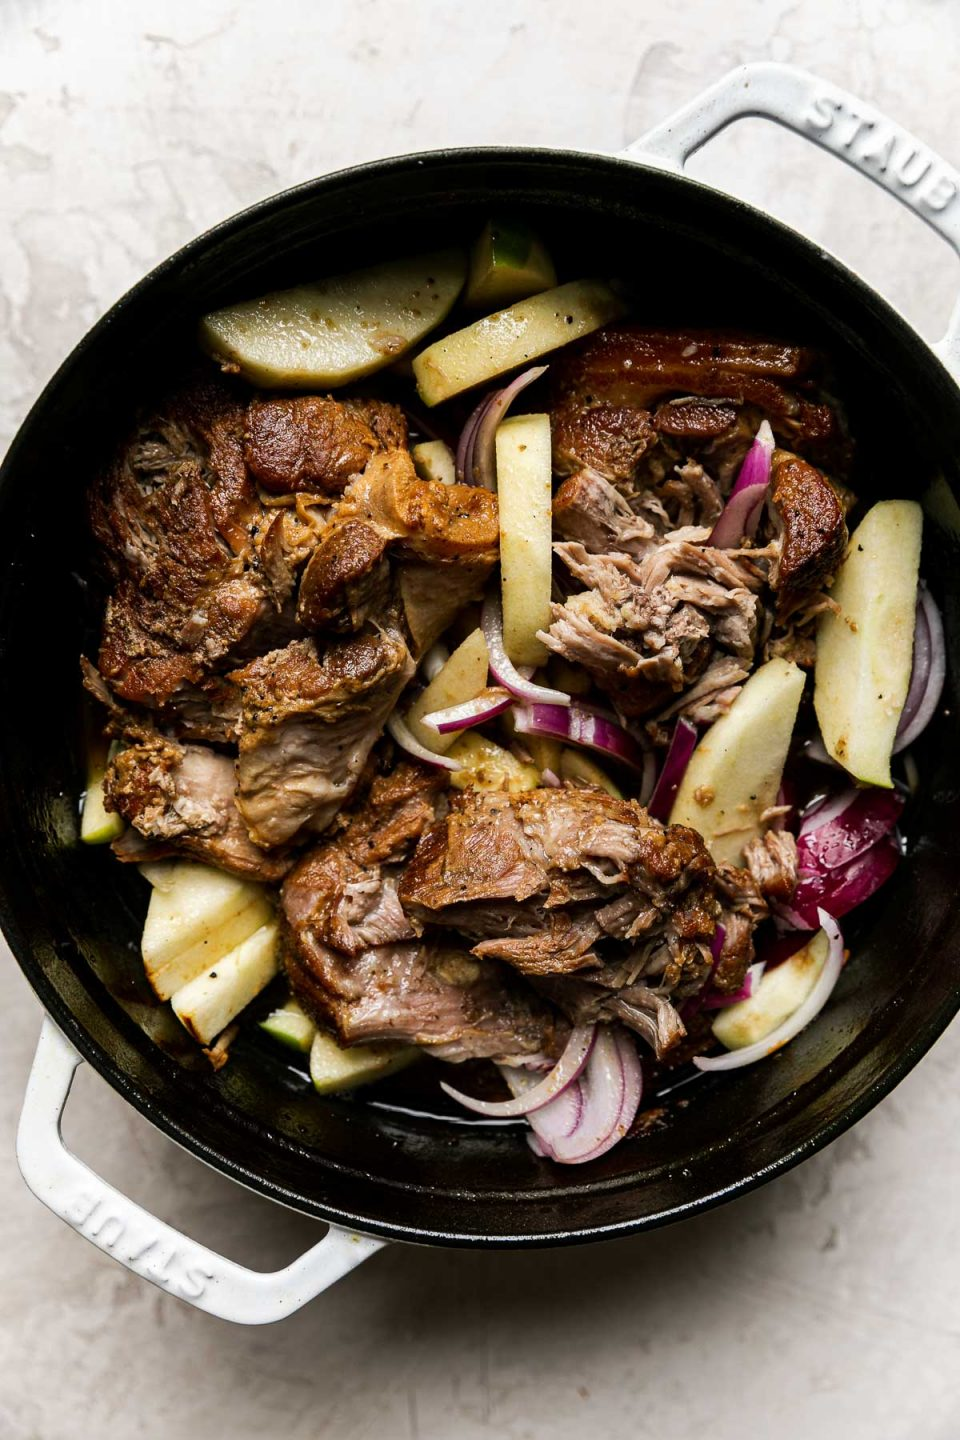 Apple Cider Braised Pork Shoulder, with apples & red onions added, in a white Dutch oven atop a creamy cement surface.